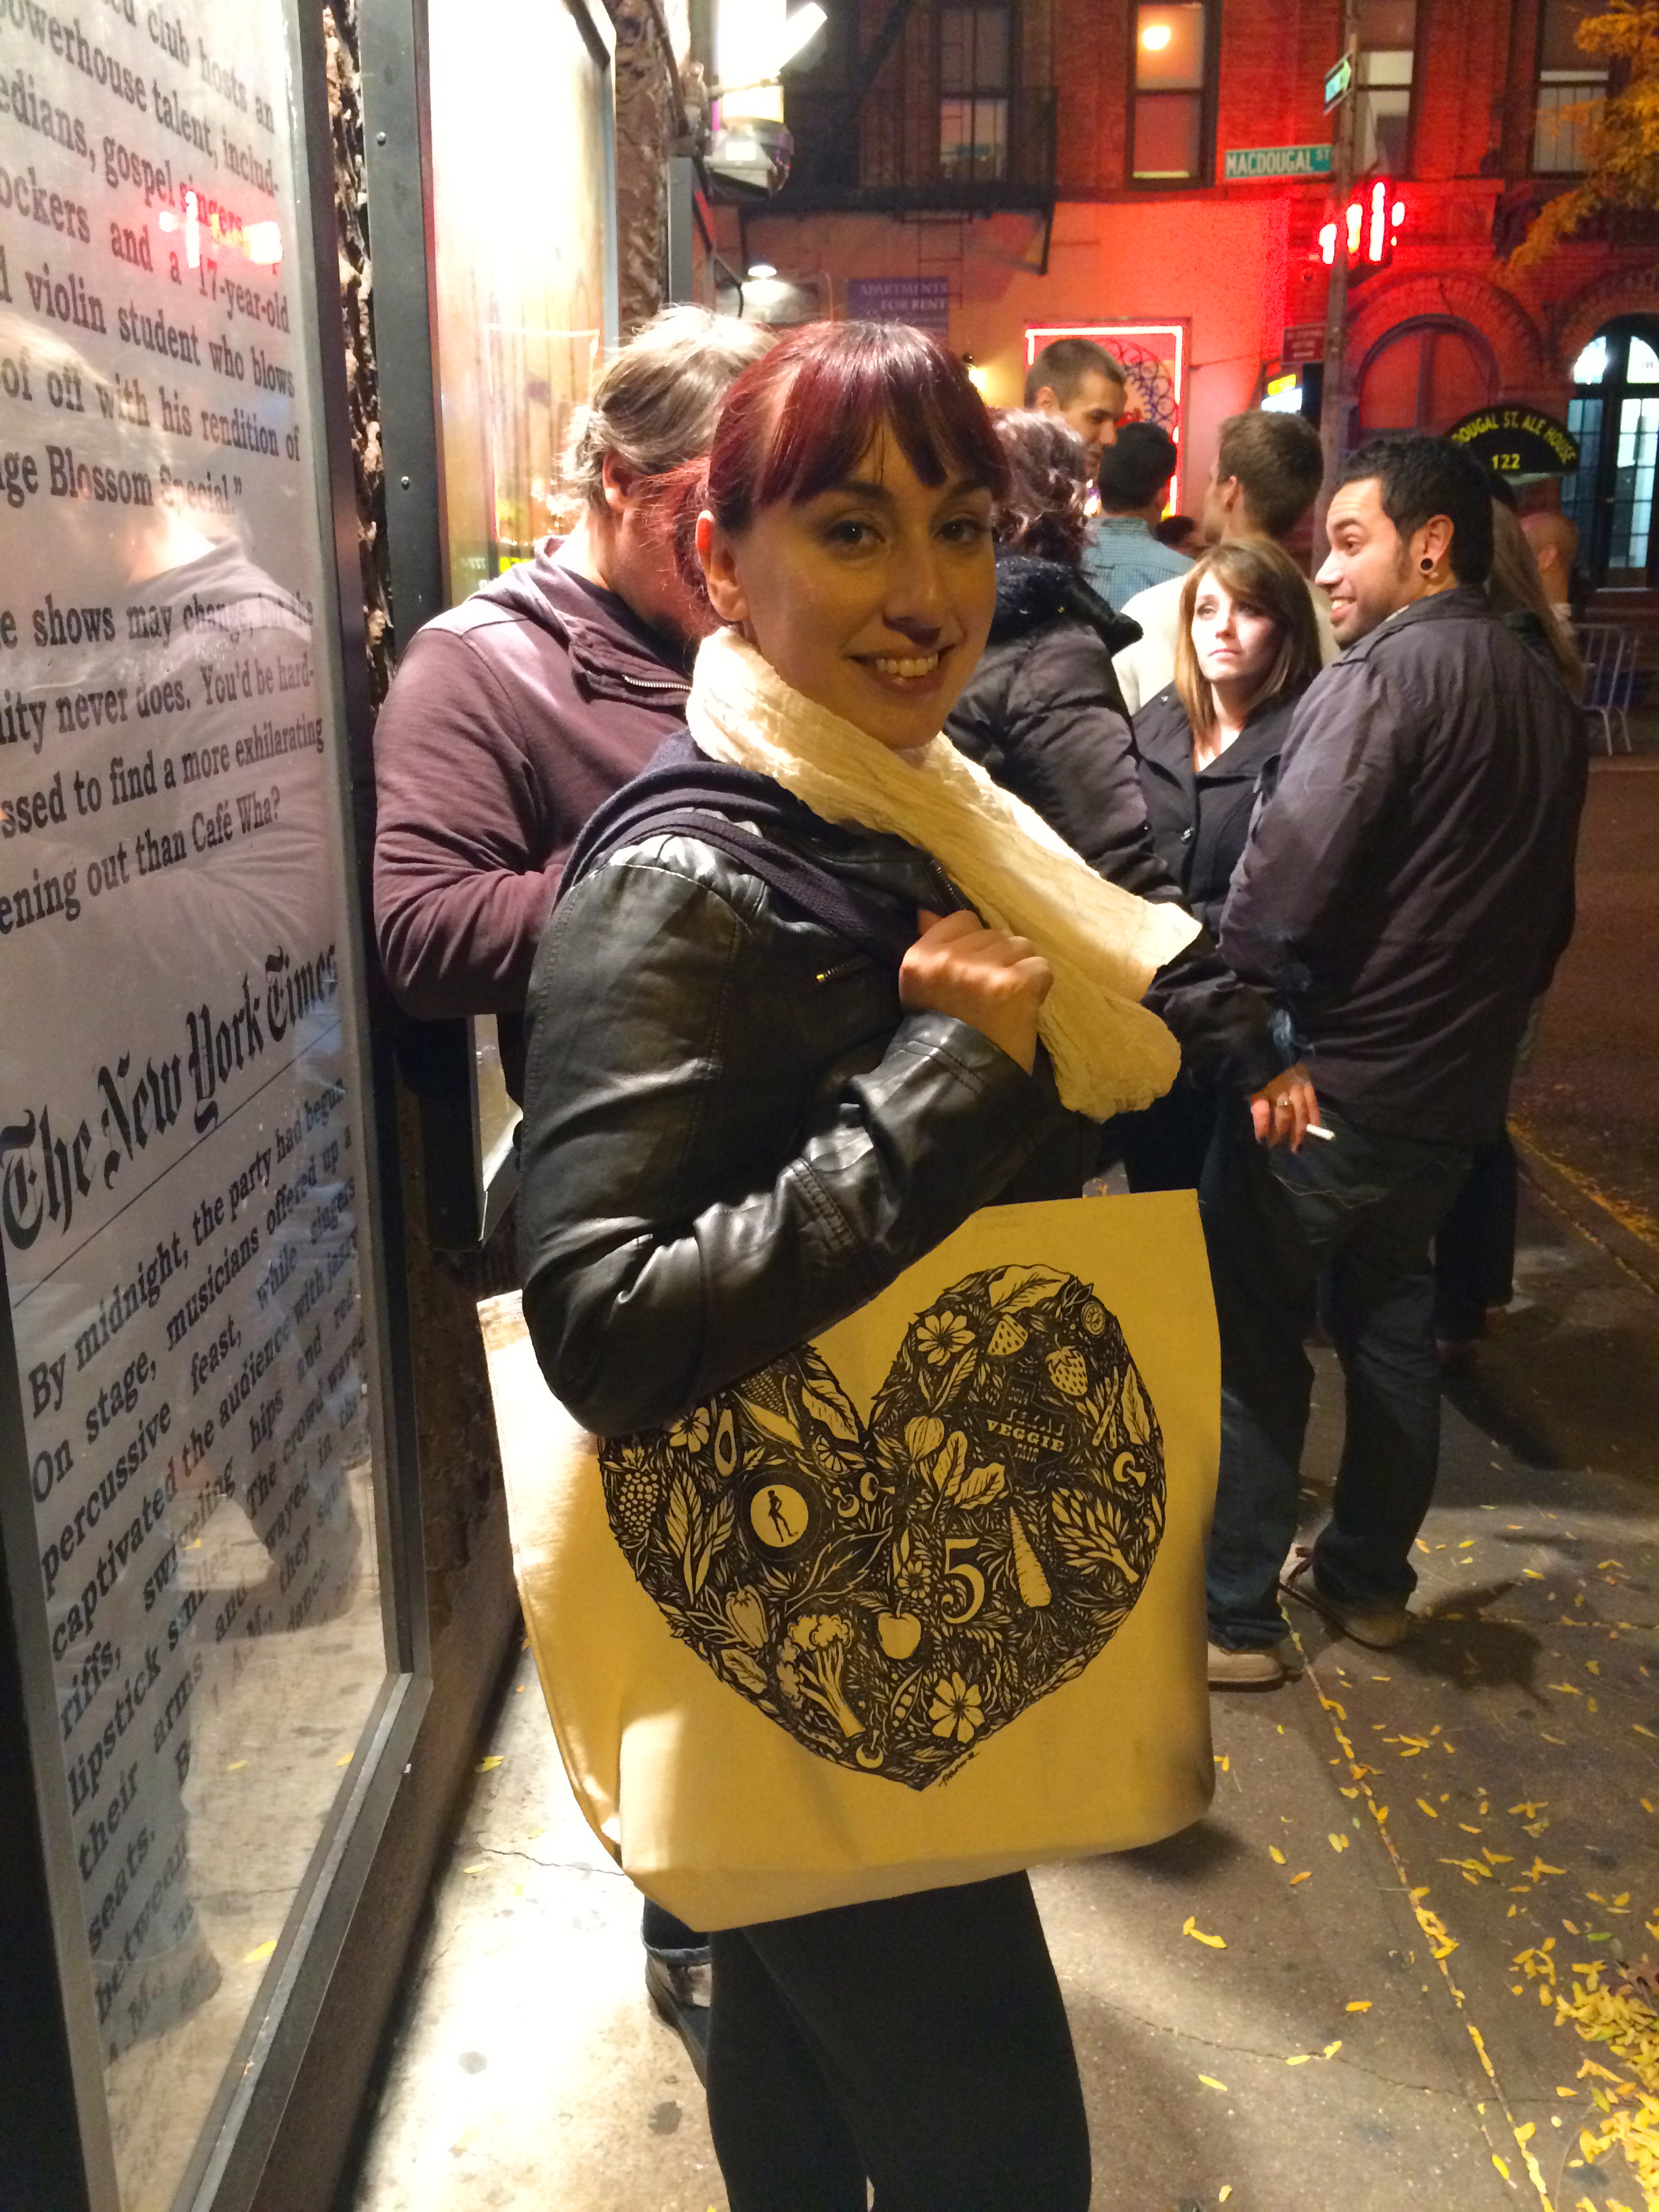 While in line at the Comedy Cellar, I snapped this shot of my lovely friend Stefanie with my Cykochik//Texas Veggie Fair tote!